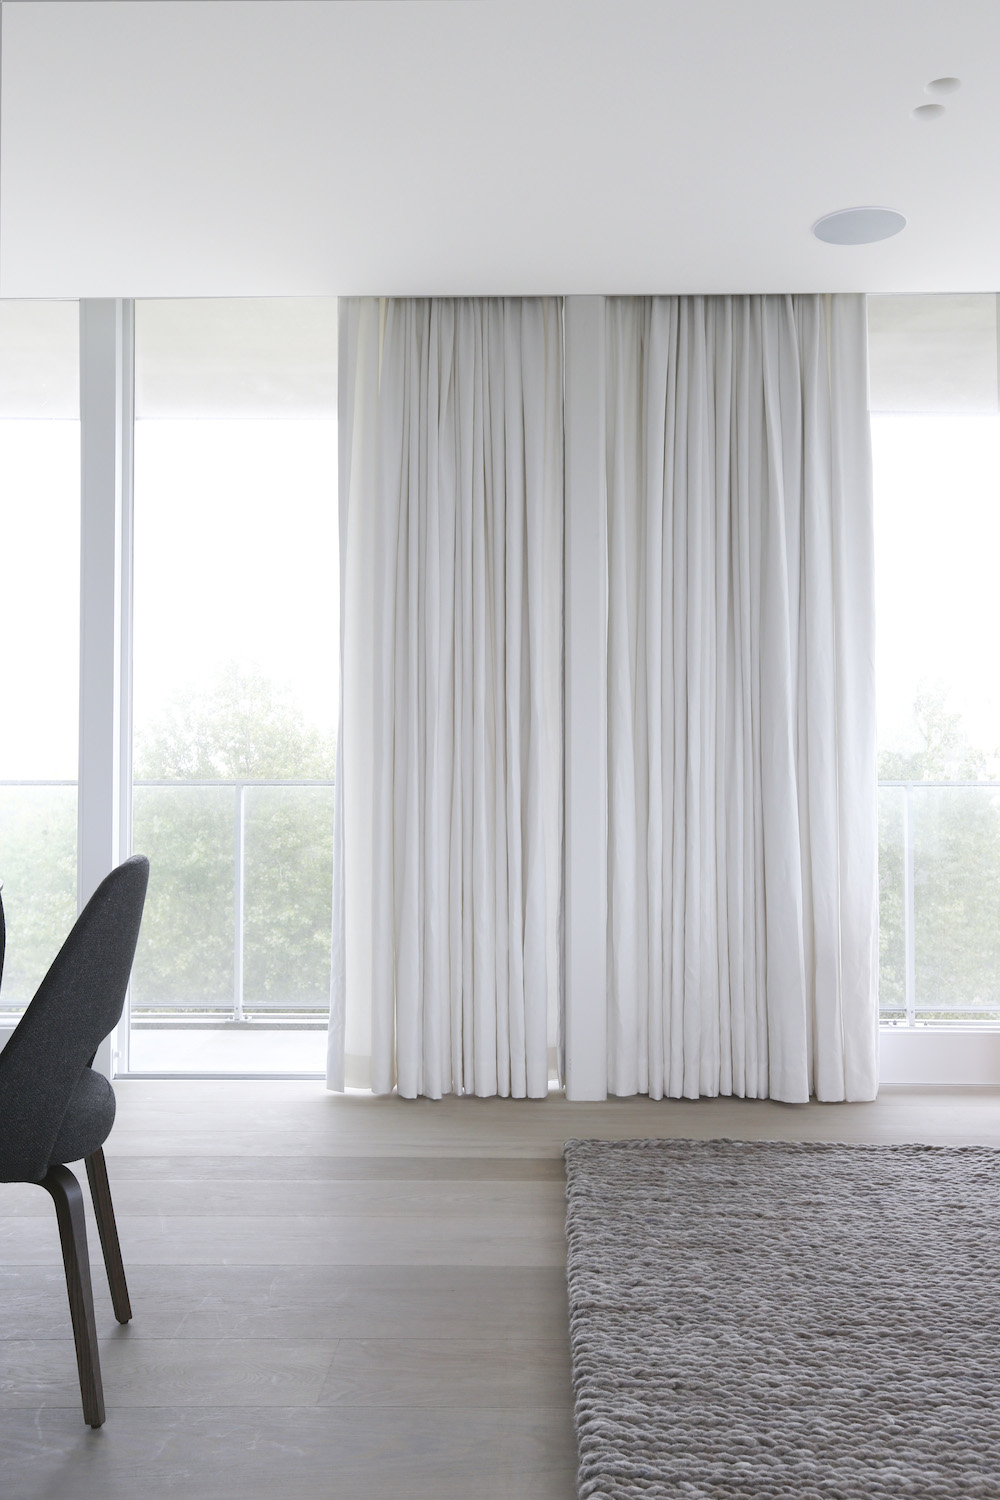 Curtains for living room drapery curtain curtain ideas for living - Unique Triplex By Govaert Amp Vanhoutte